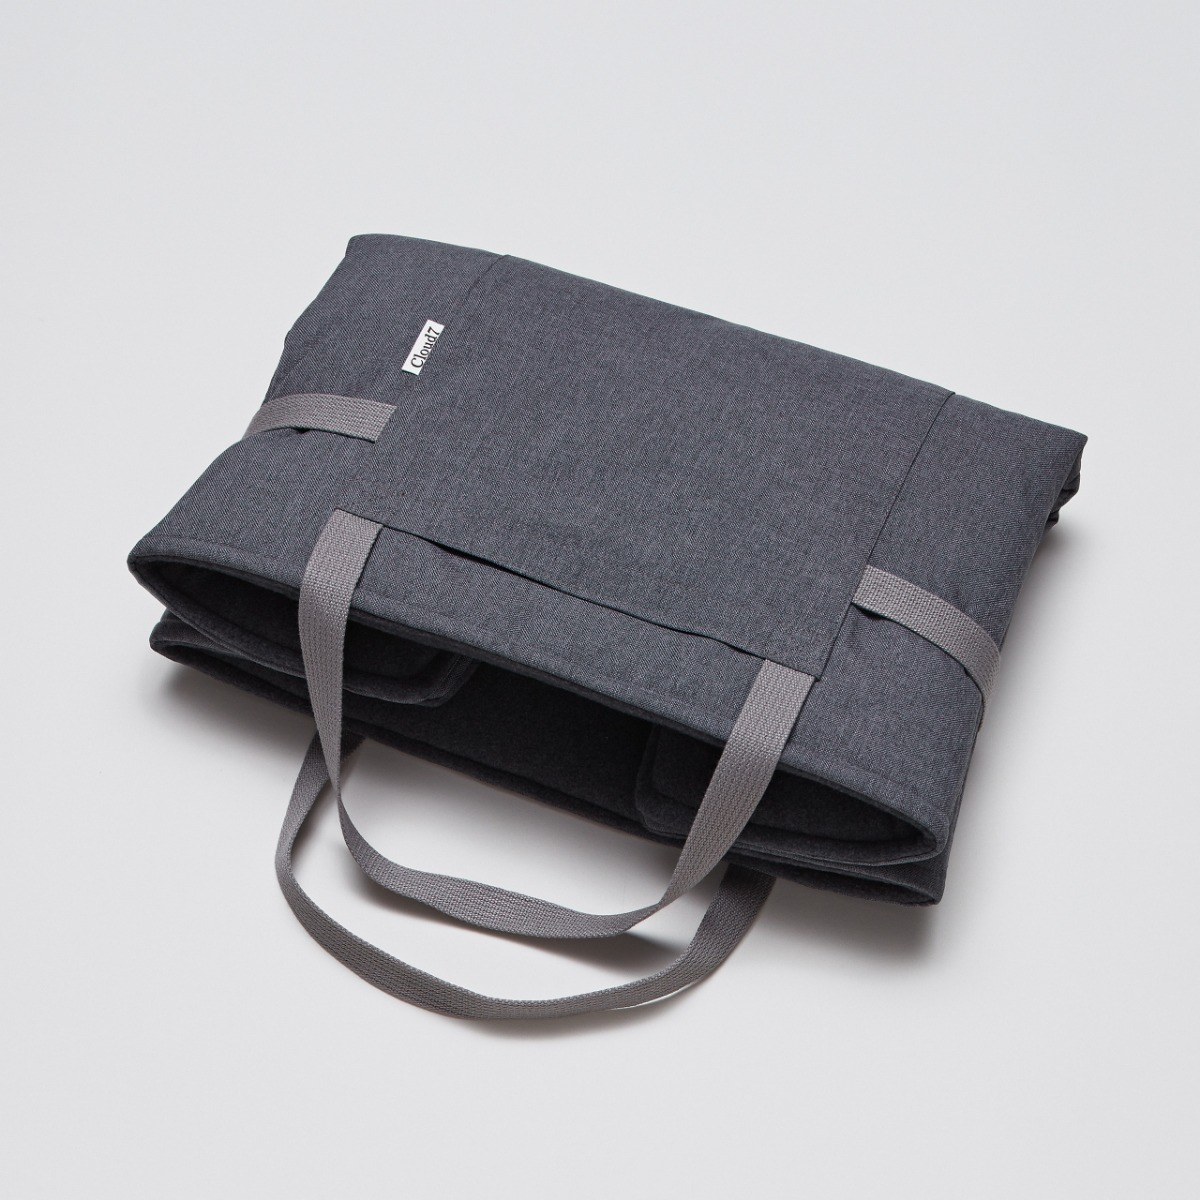 Travel Bed Waterproof Mid gray - DARK GRAY